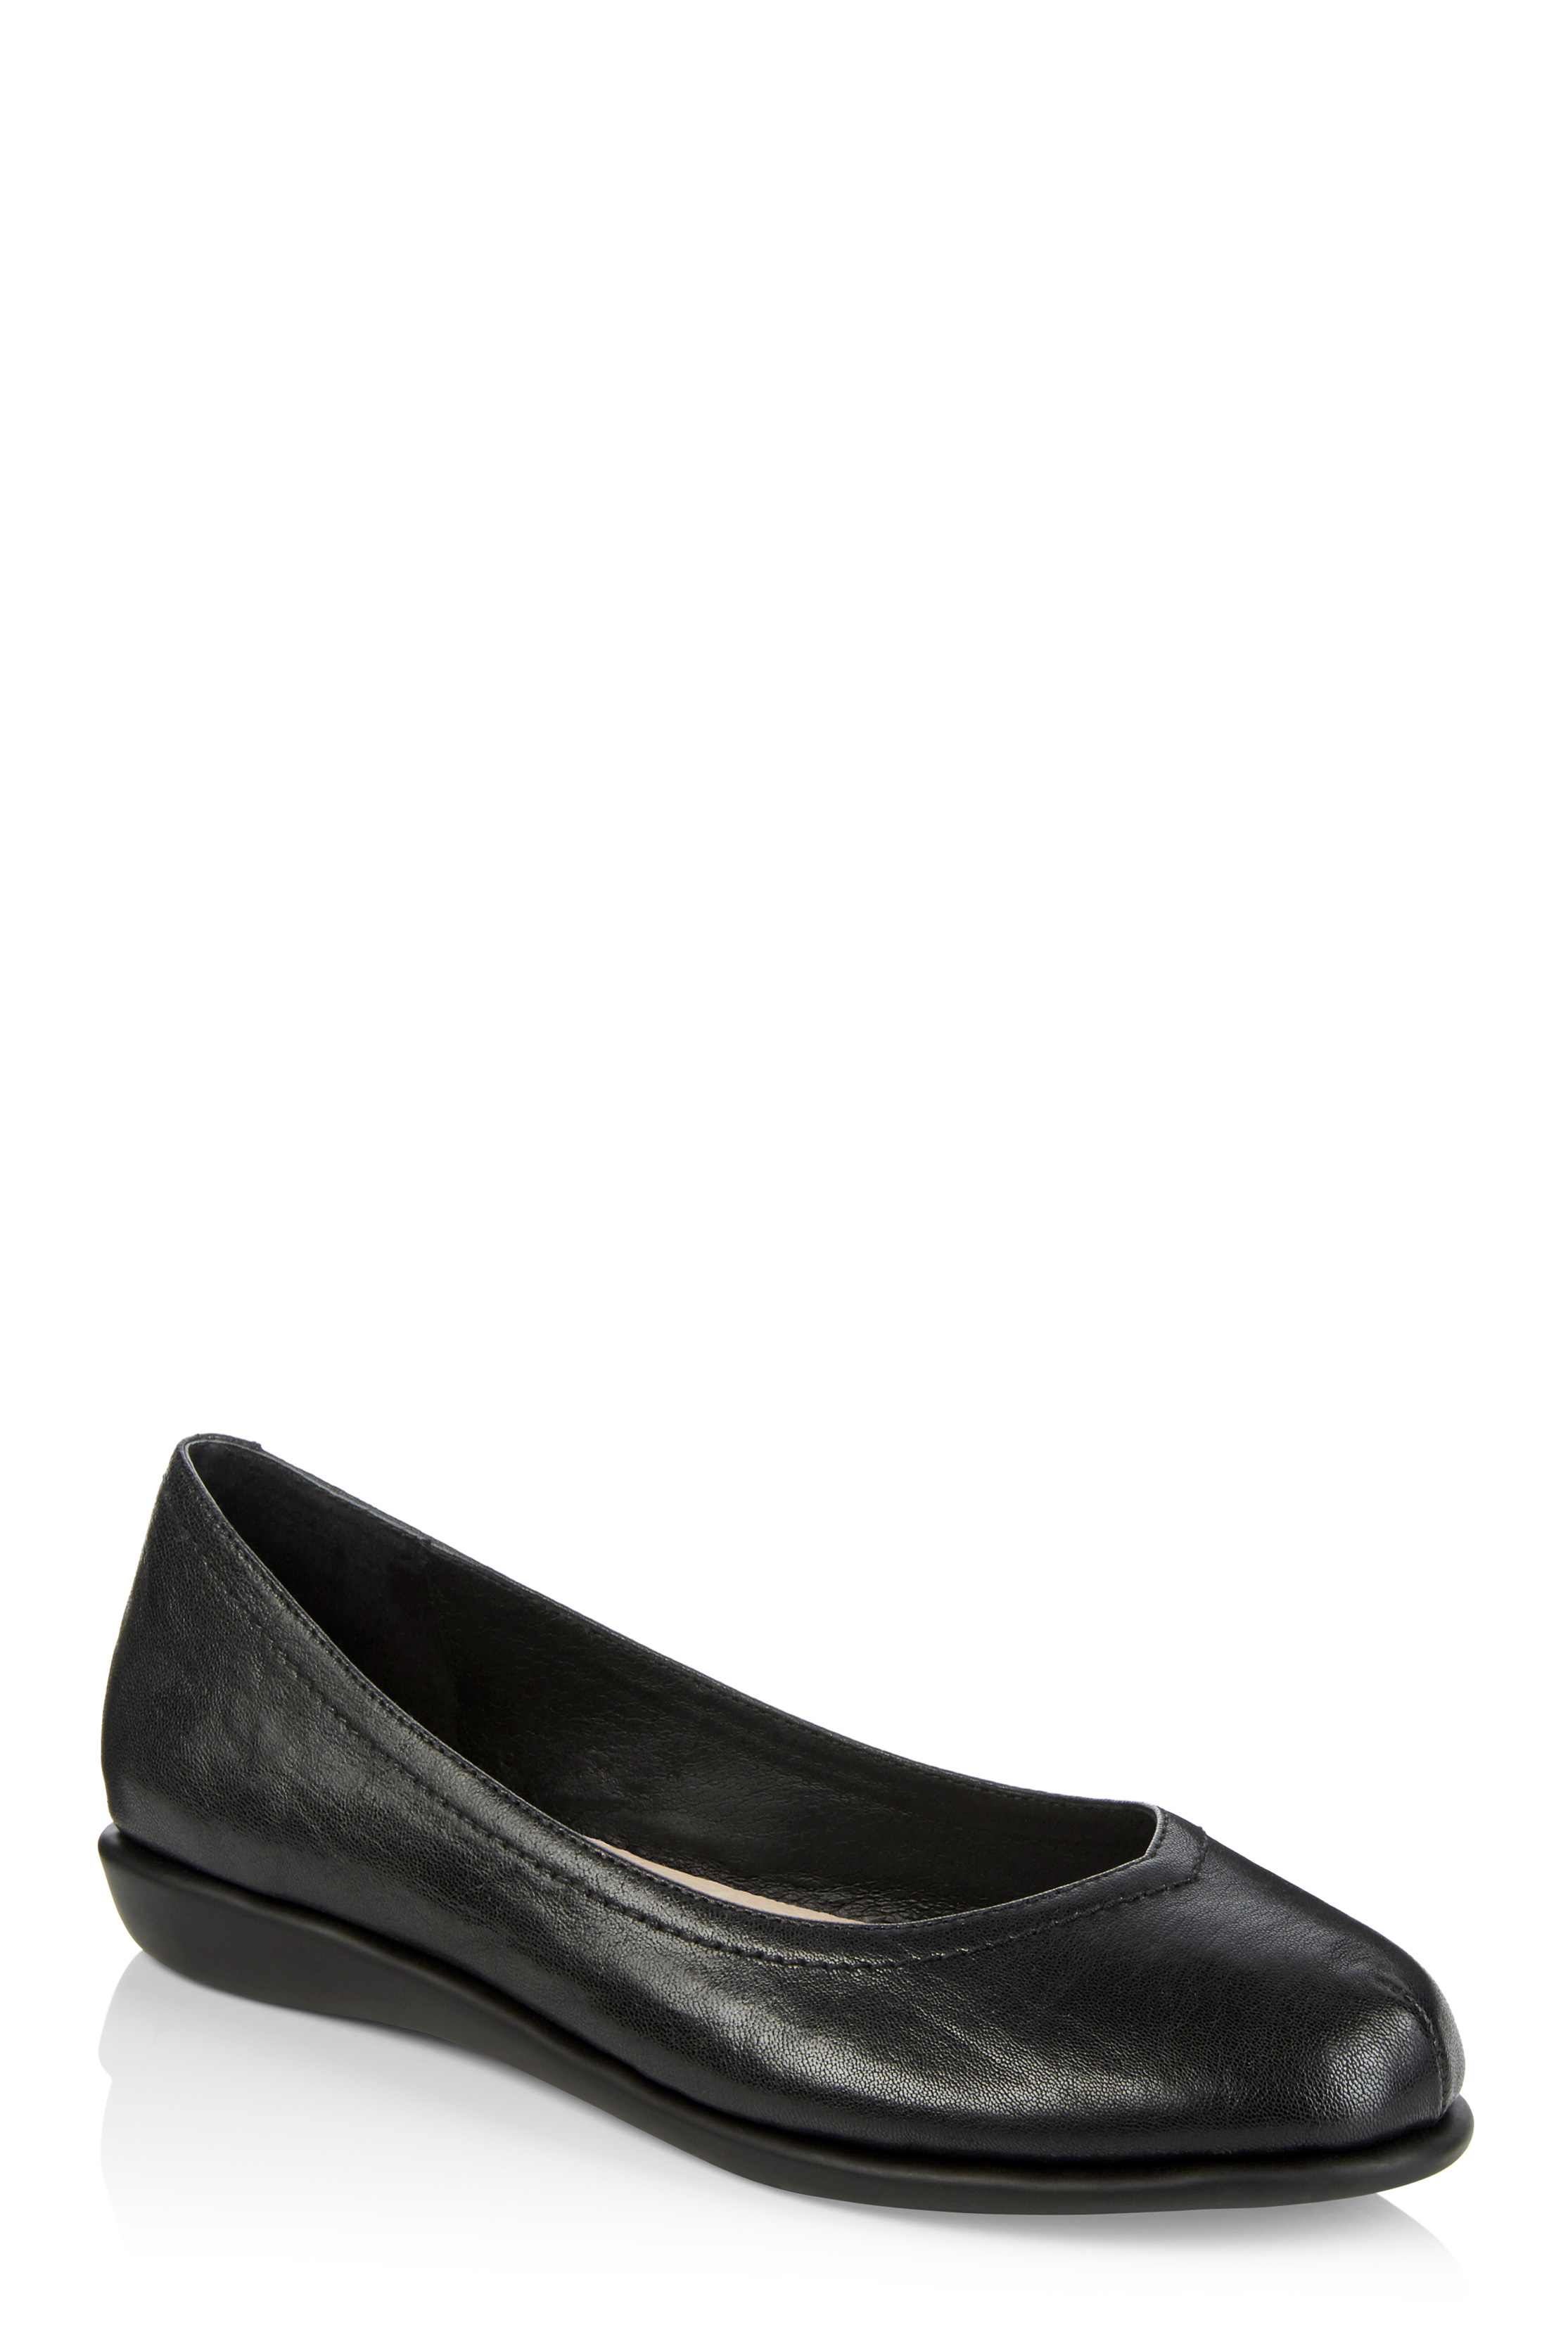 LTS Callie Comfy Leather Ballerina